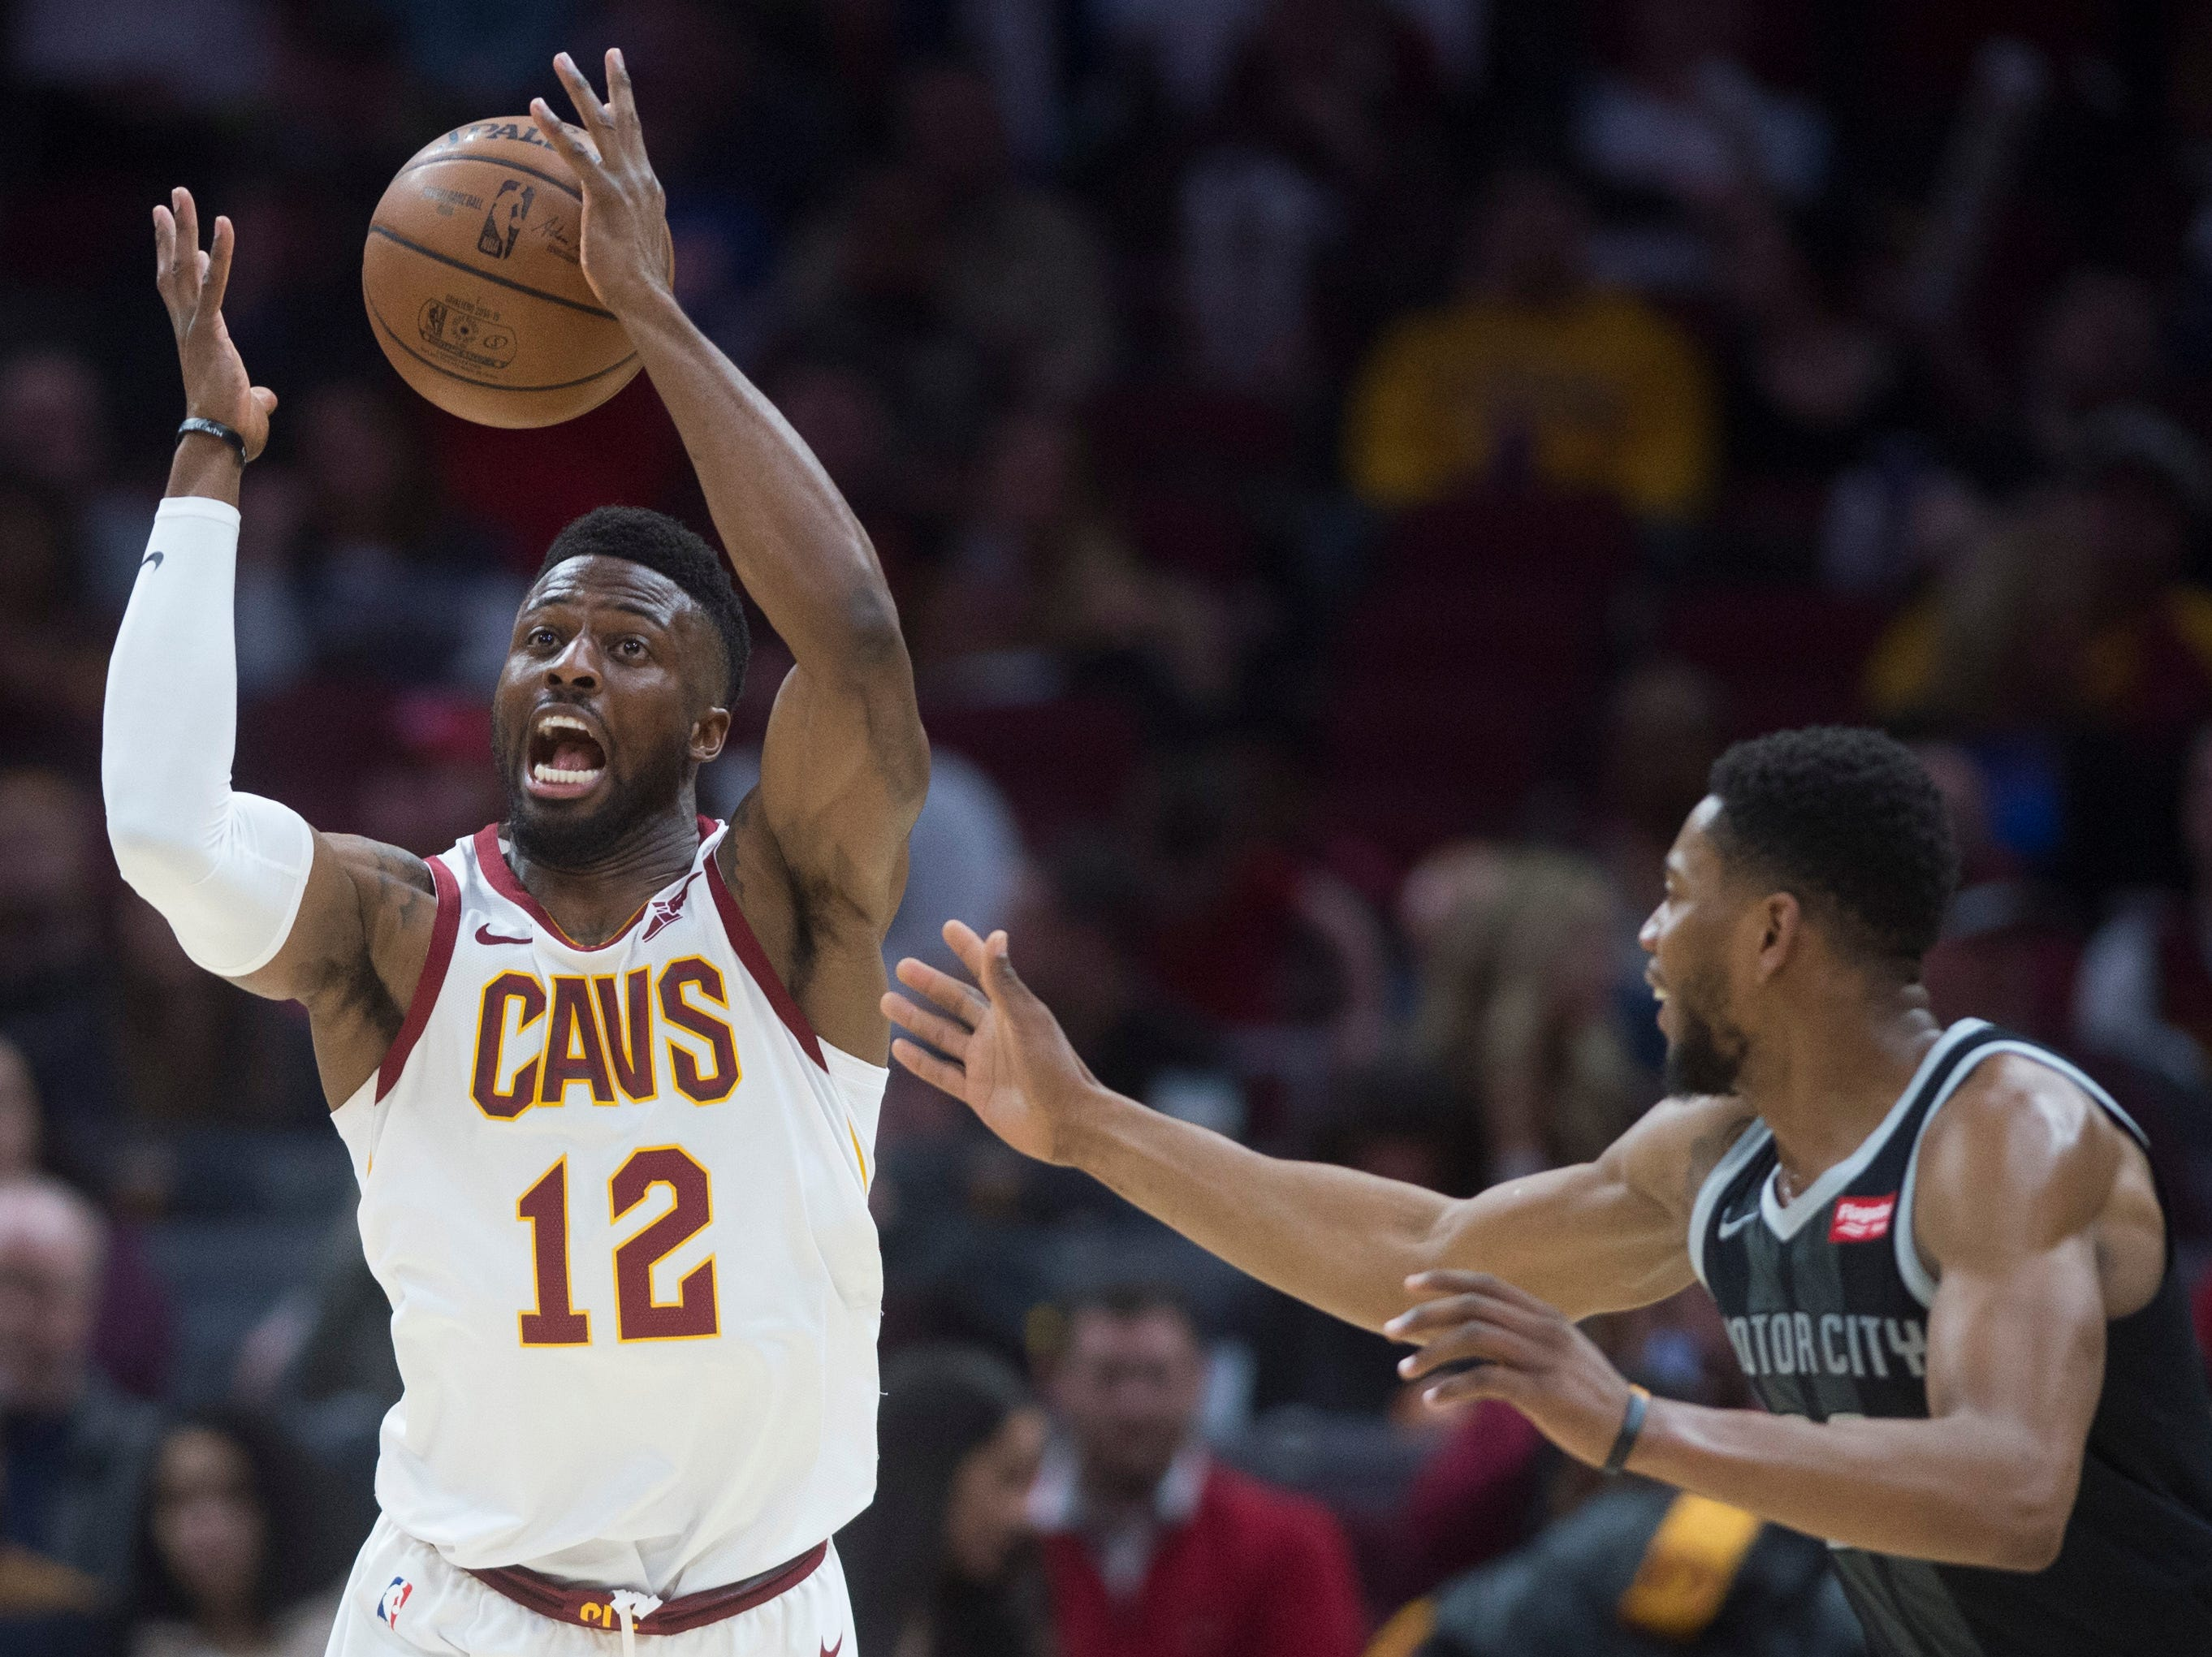 Cleveland Cavaliers guard David Nwaba loses the handle on the ball as Detroit Pistons guard Glenn Robinson III defends in the first half of an NBA basketball game.